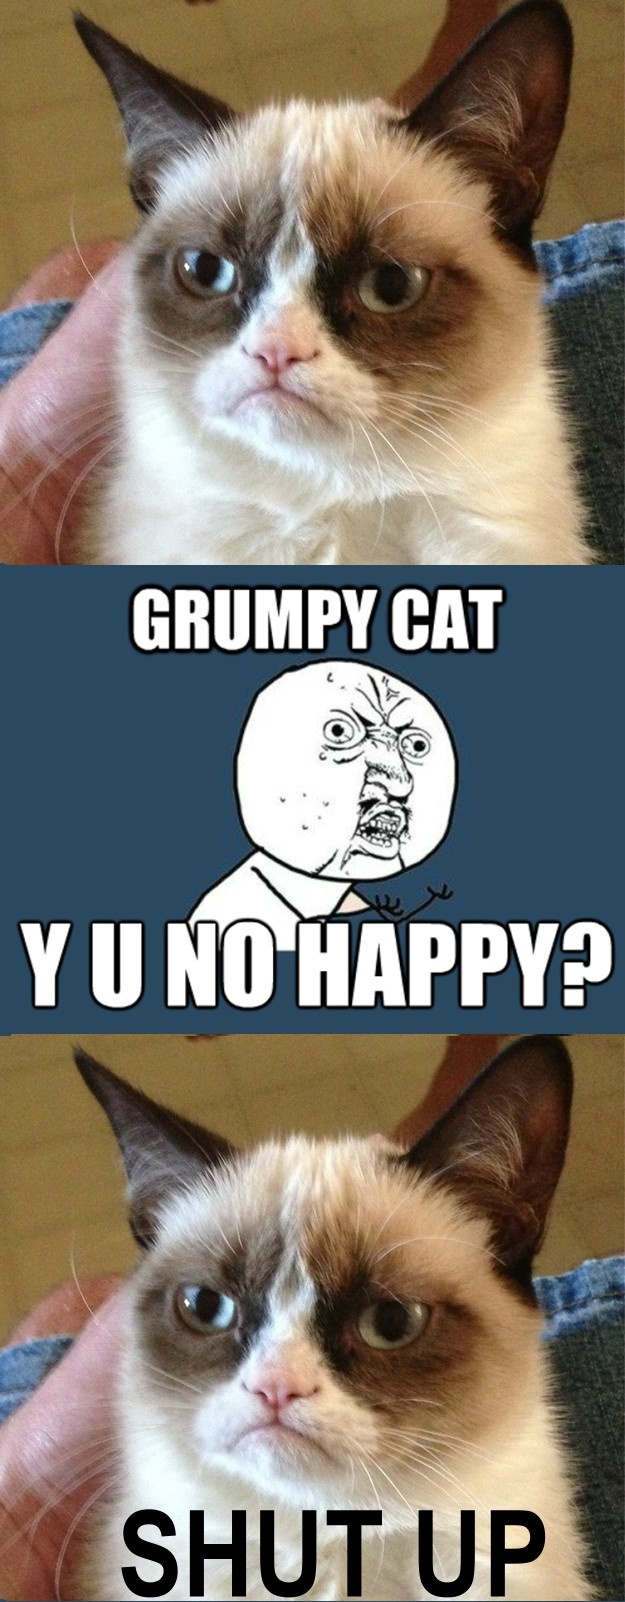 y u no grumpy cat crossover y u no pinterest cats no grumpy cat and haha. Black Bedroom Furniture Sets. Home Design Ideas